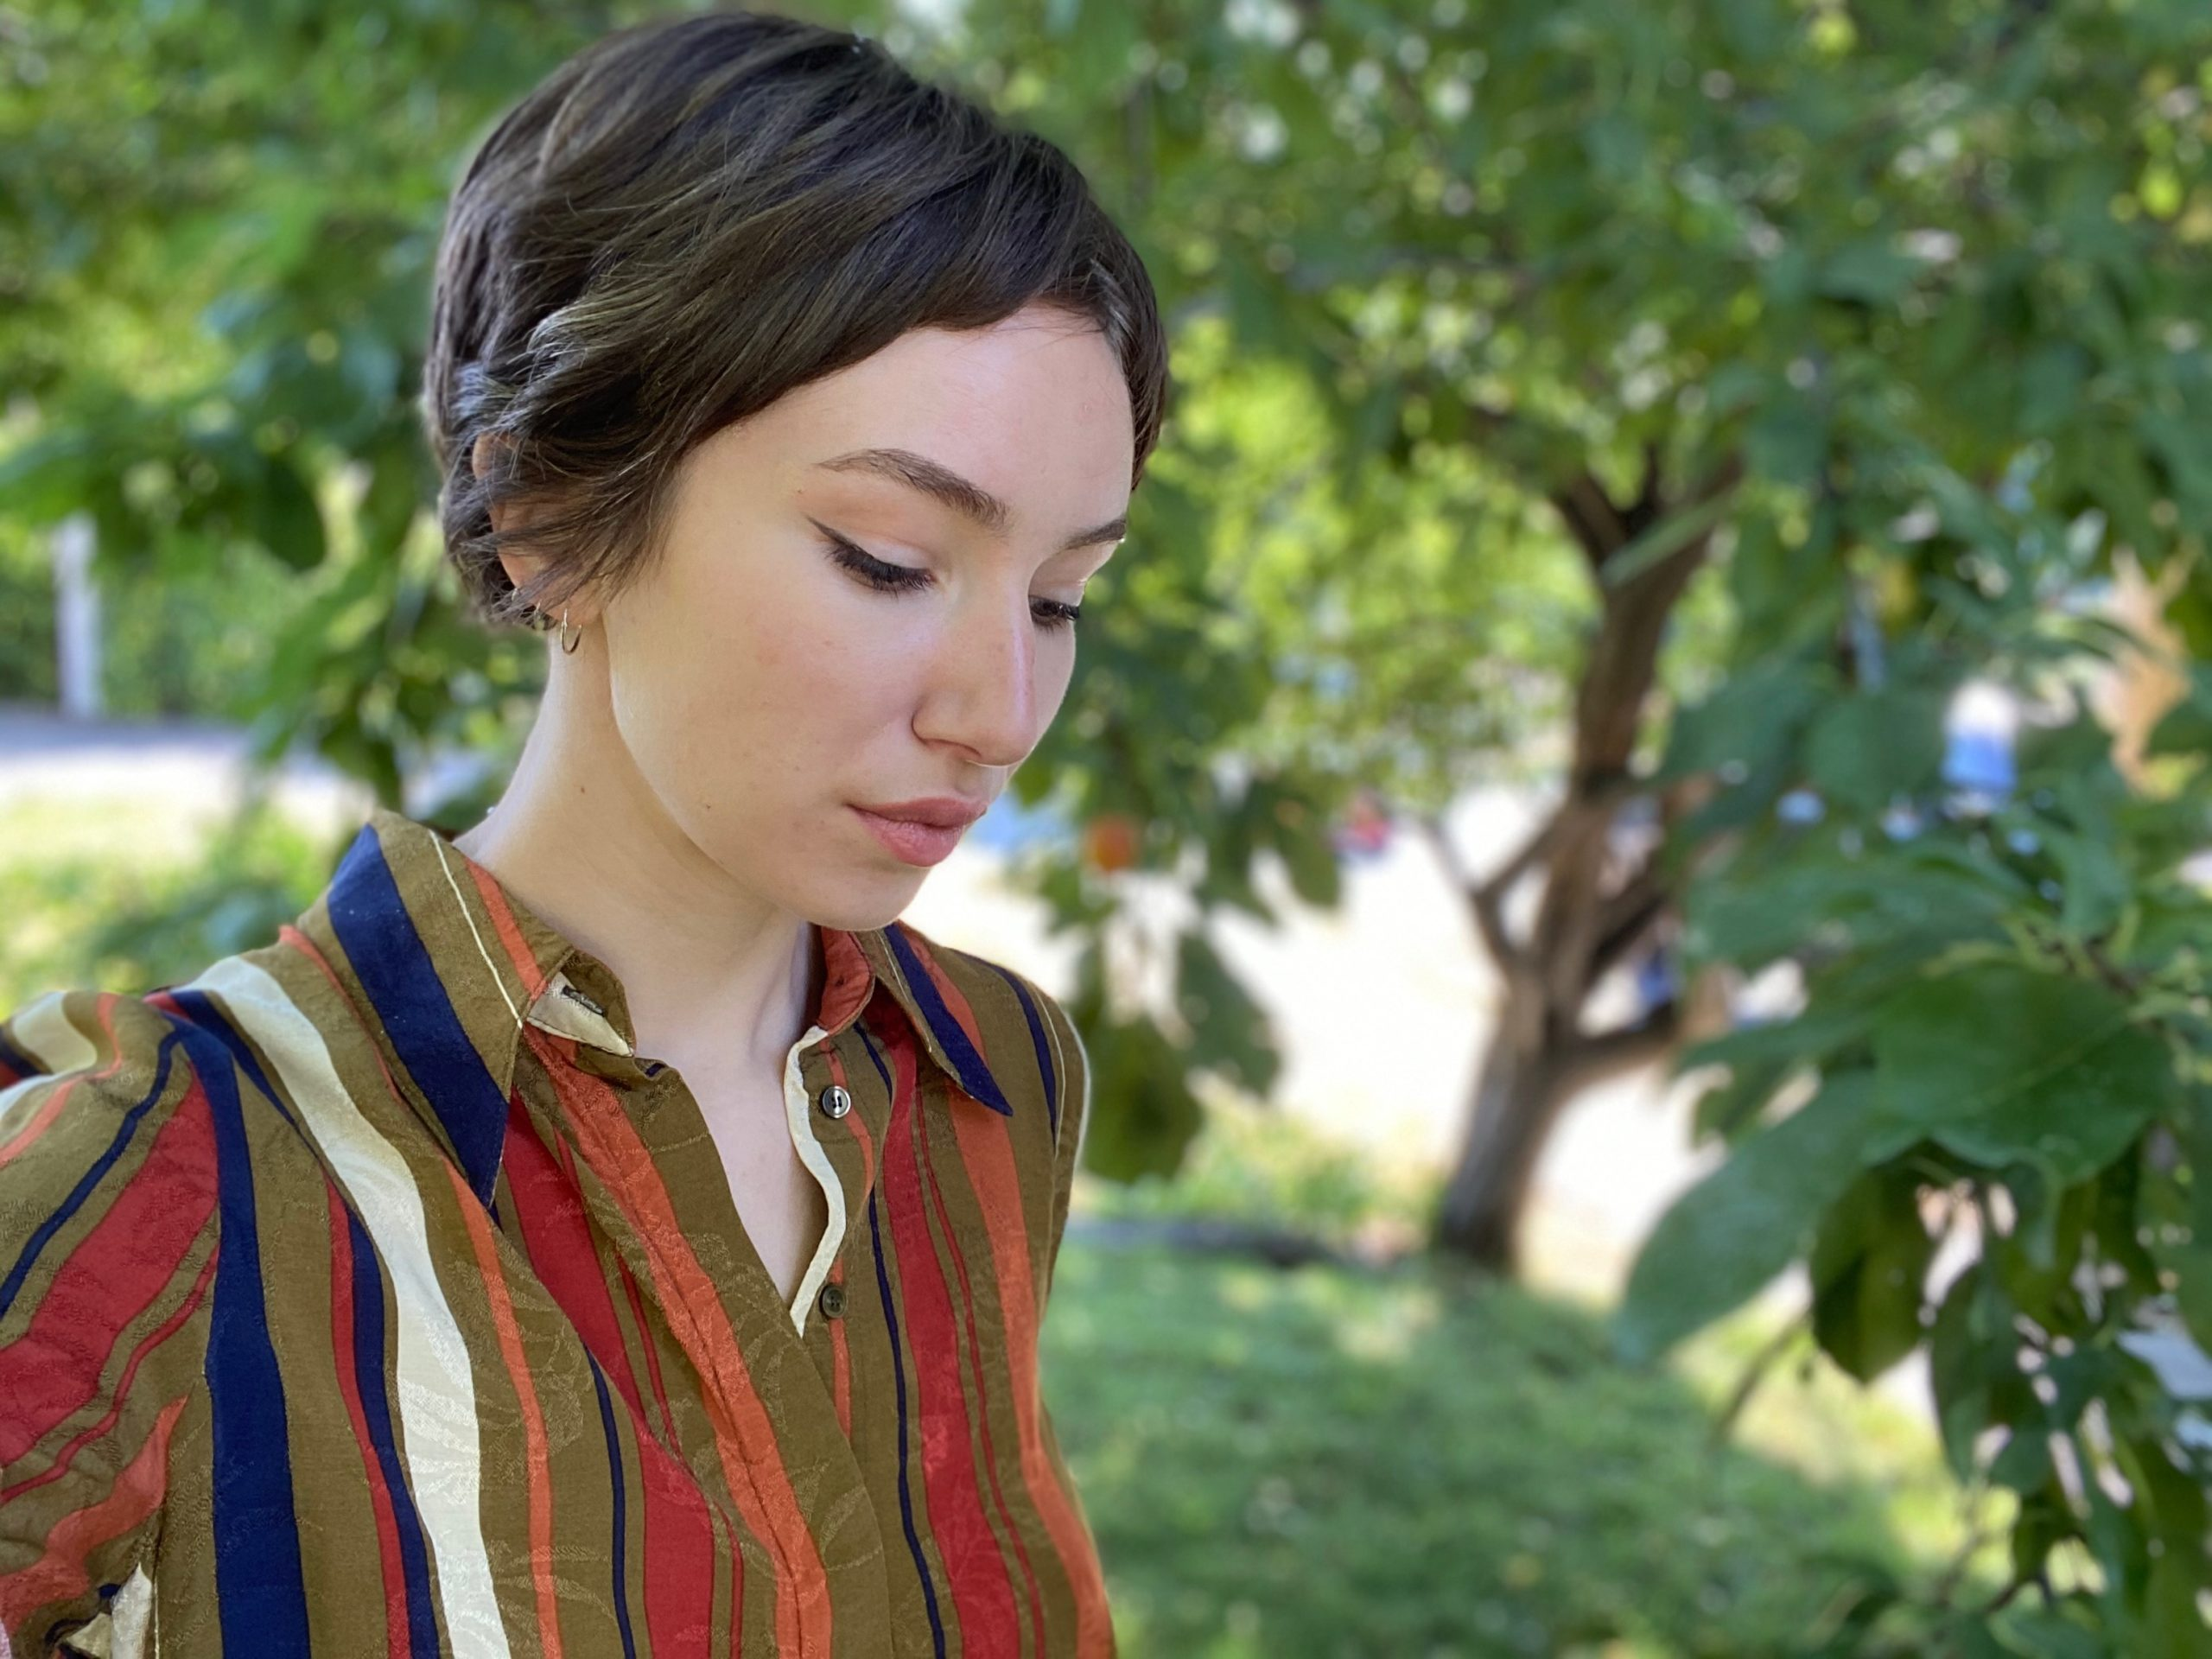 Effy is outside by trees in a striped brown, red, blue, and white shirt.